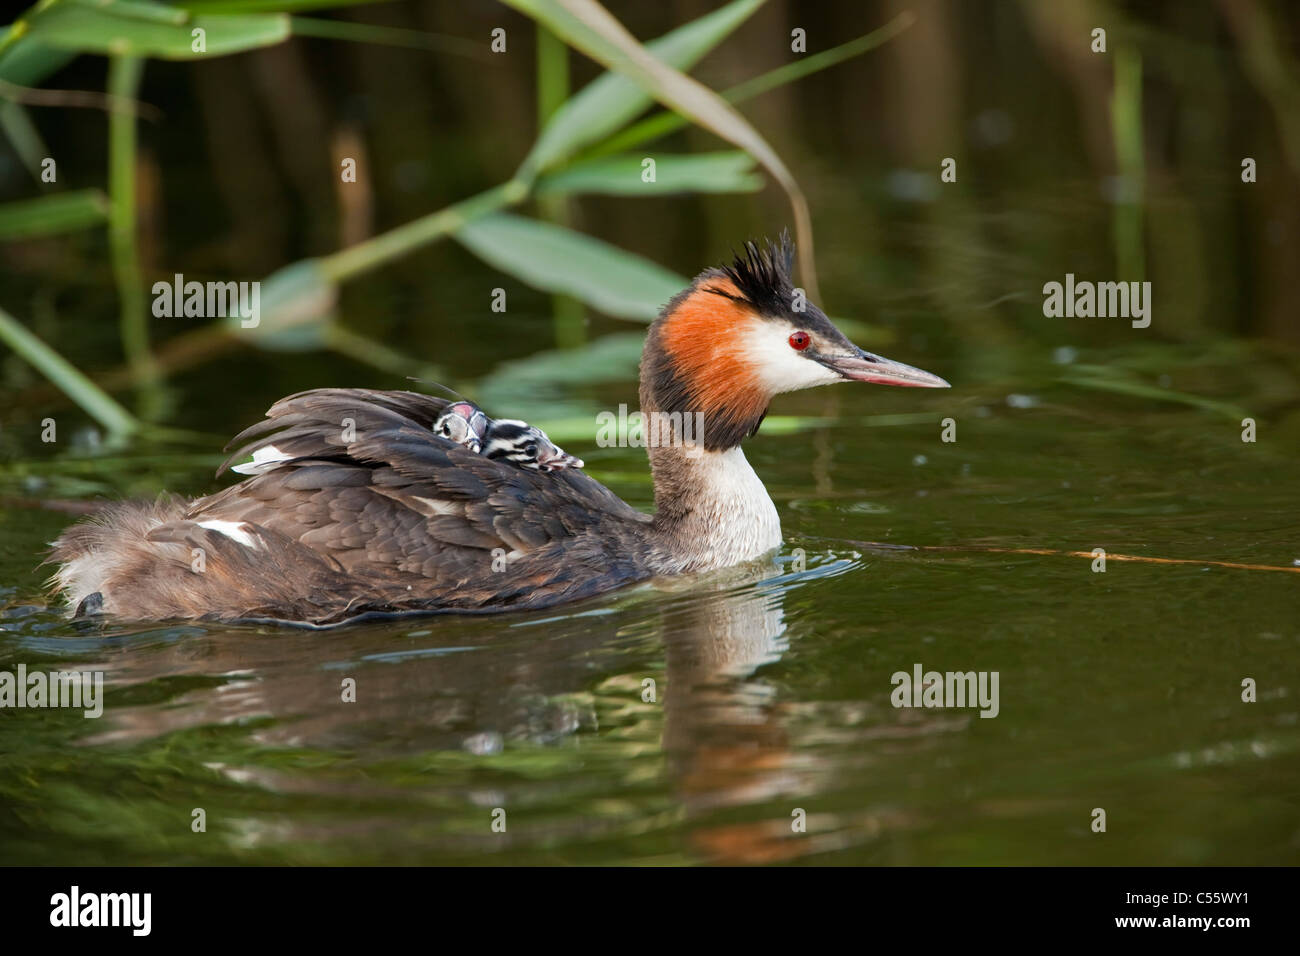 The Netherlands, Werkendam, De Biesbosch national park. Great Crested Grebes, Podiceps cristatus. Young on the back - Stock Image